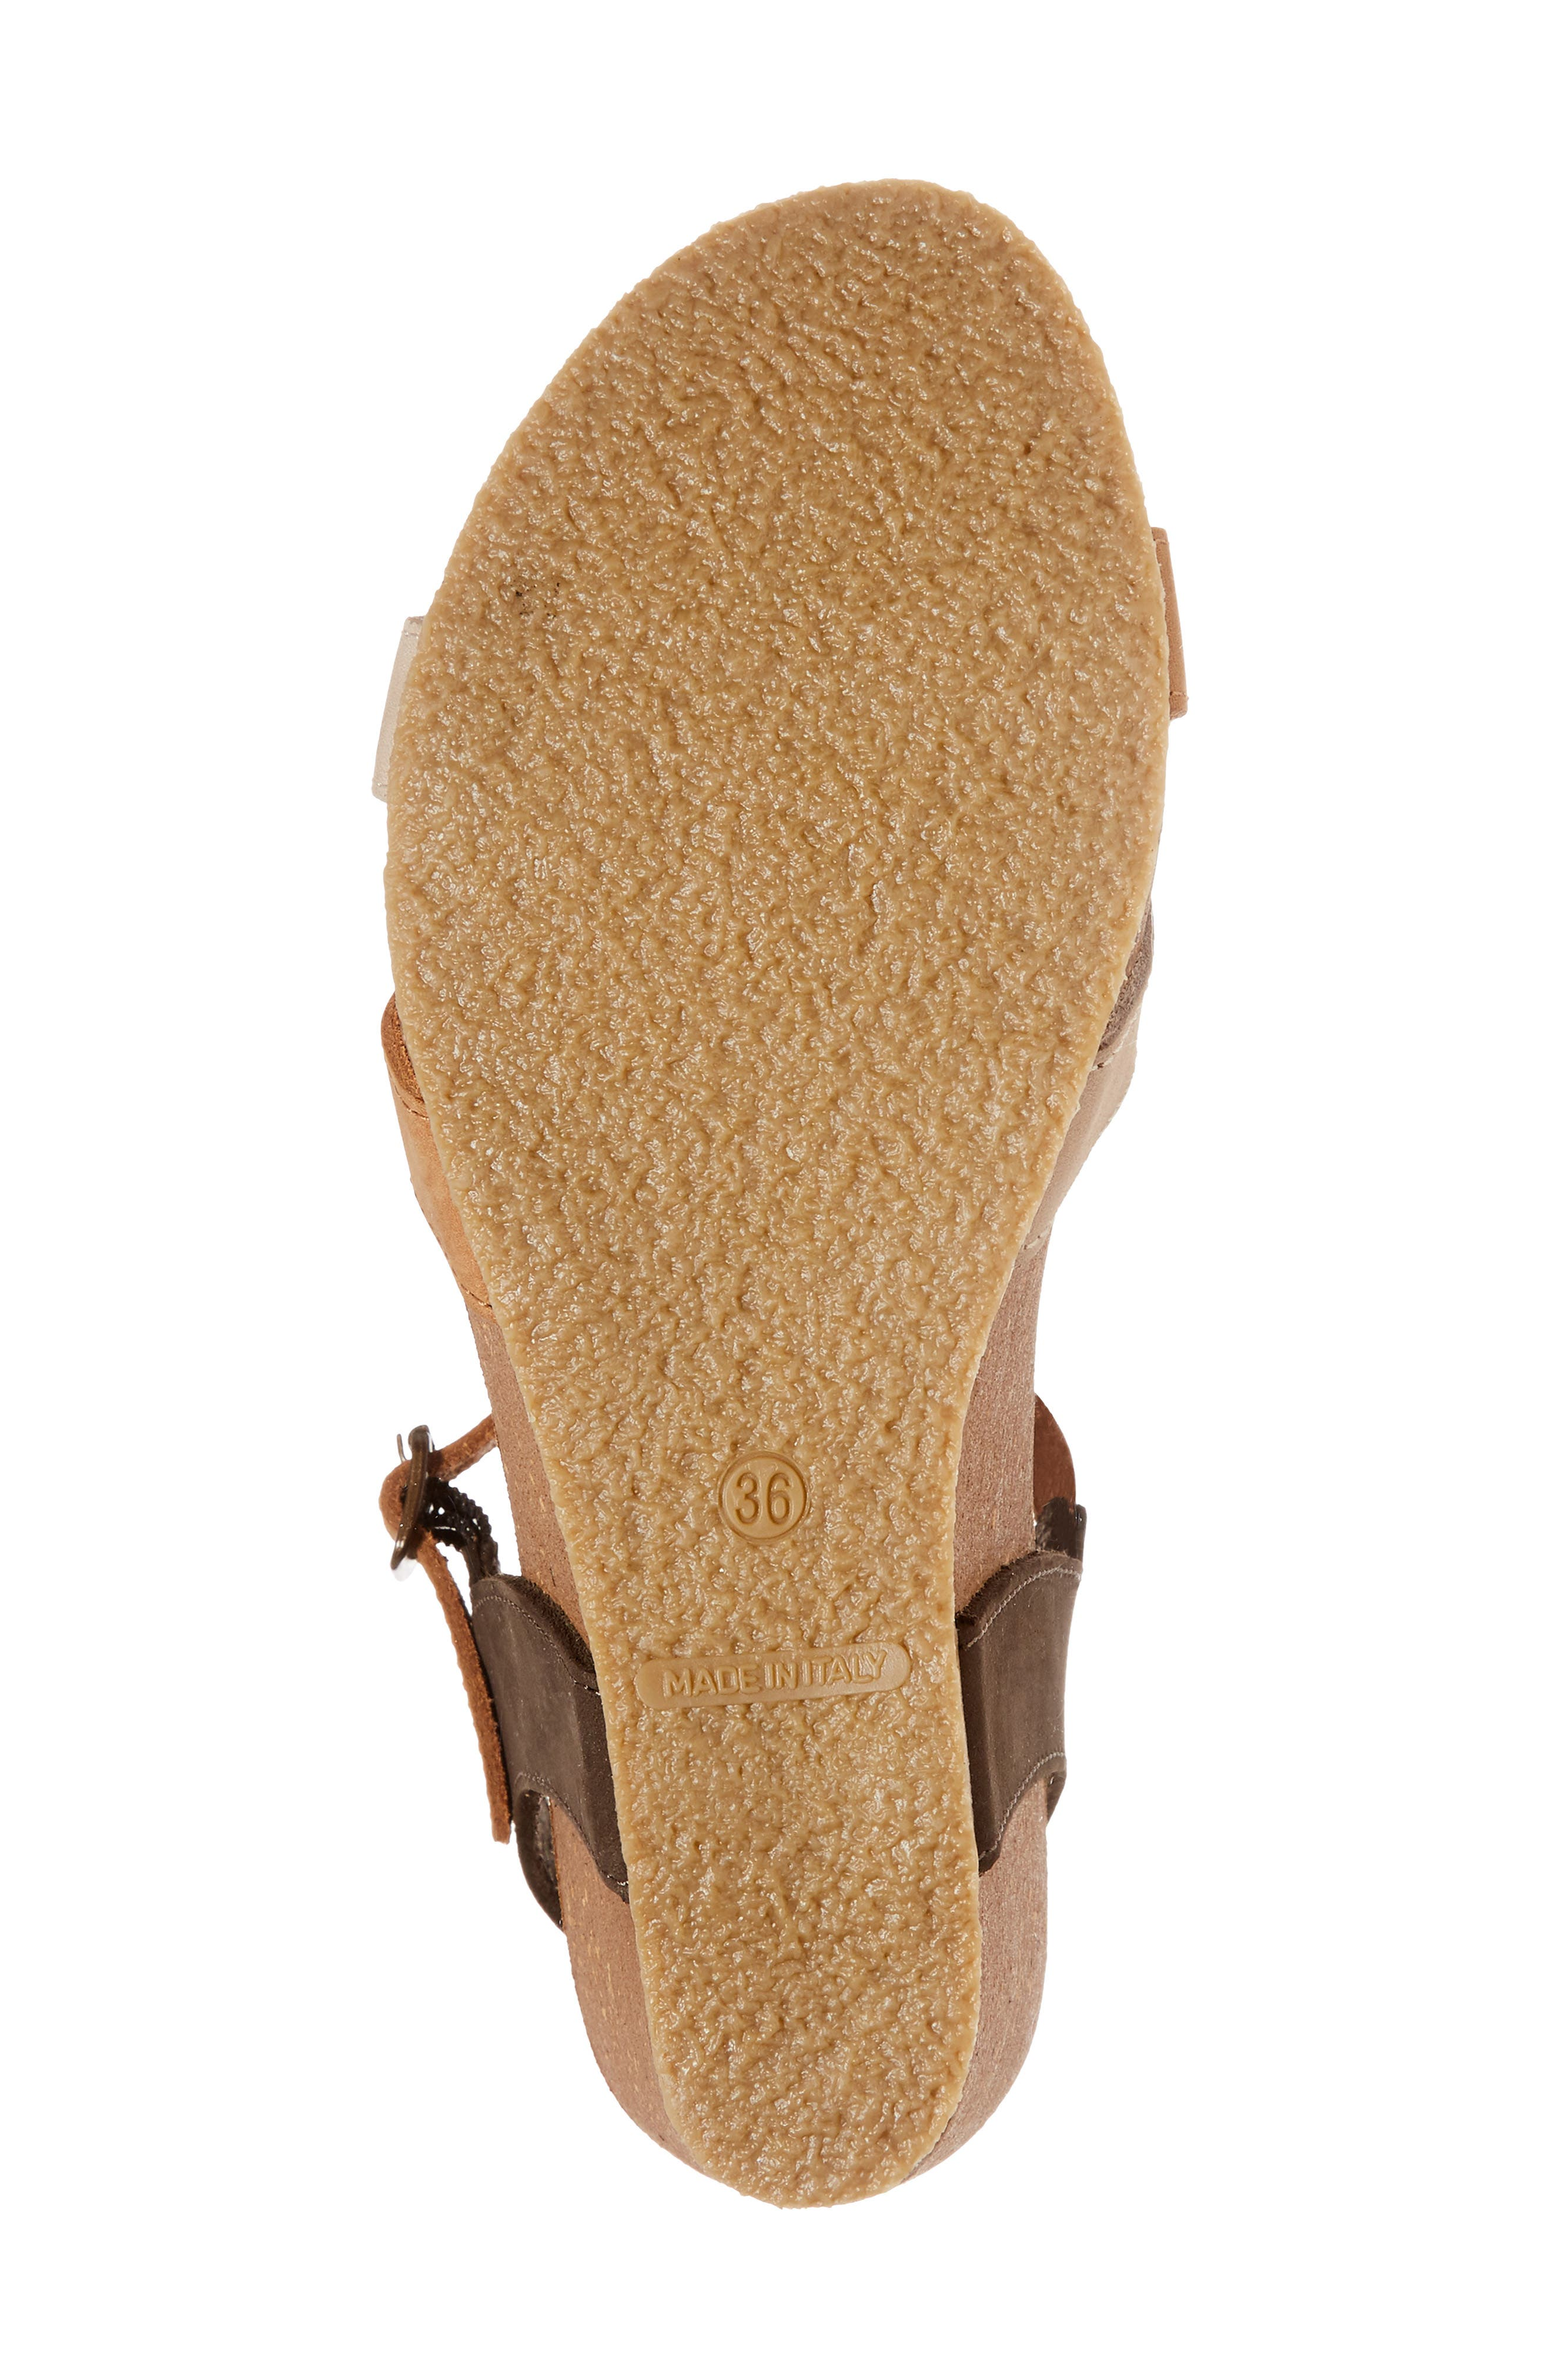 Lucca Wedge Sandal,                             Alternate thumbnail 6, color,                             Multi Cognac Nubuck Leather